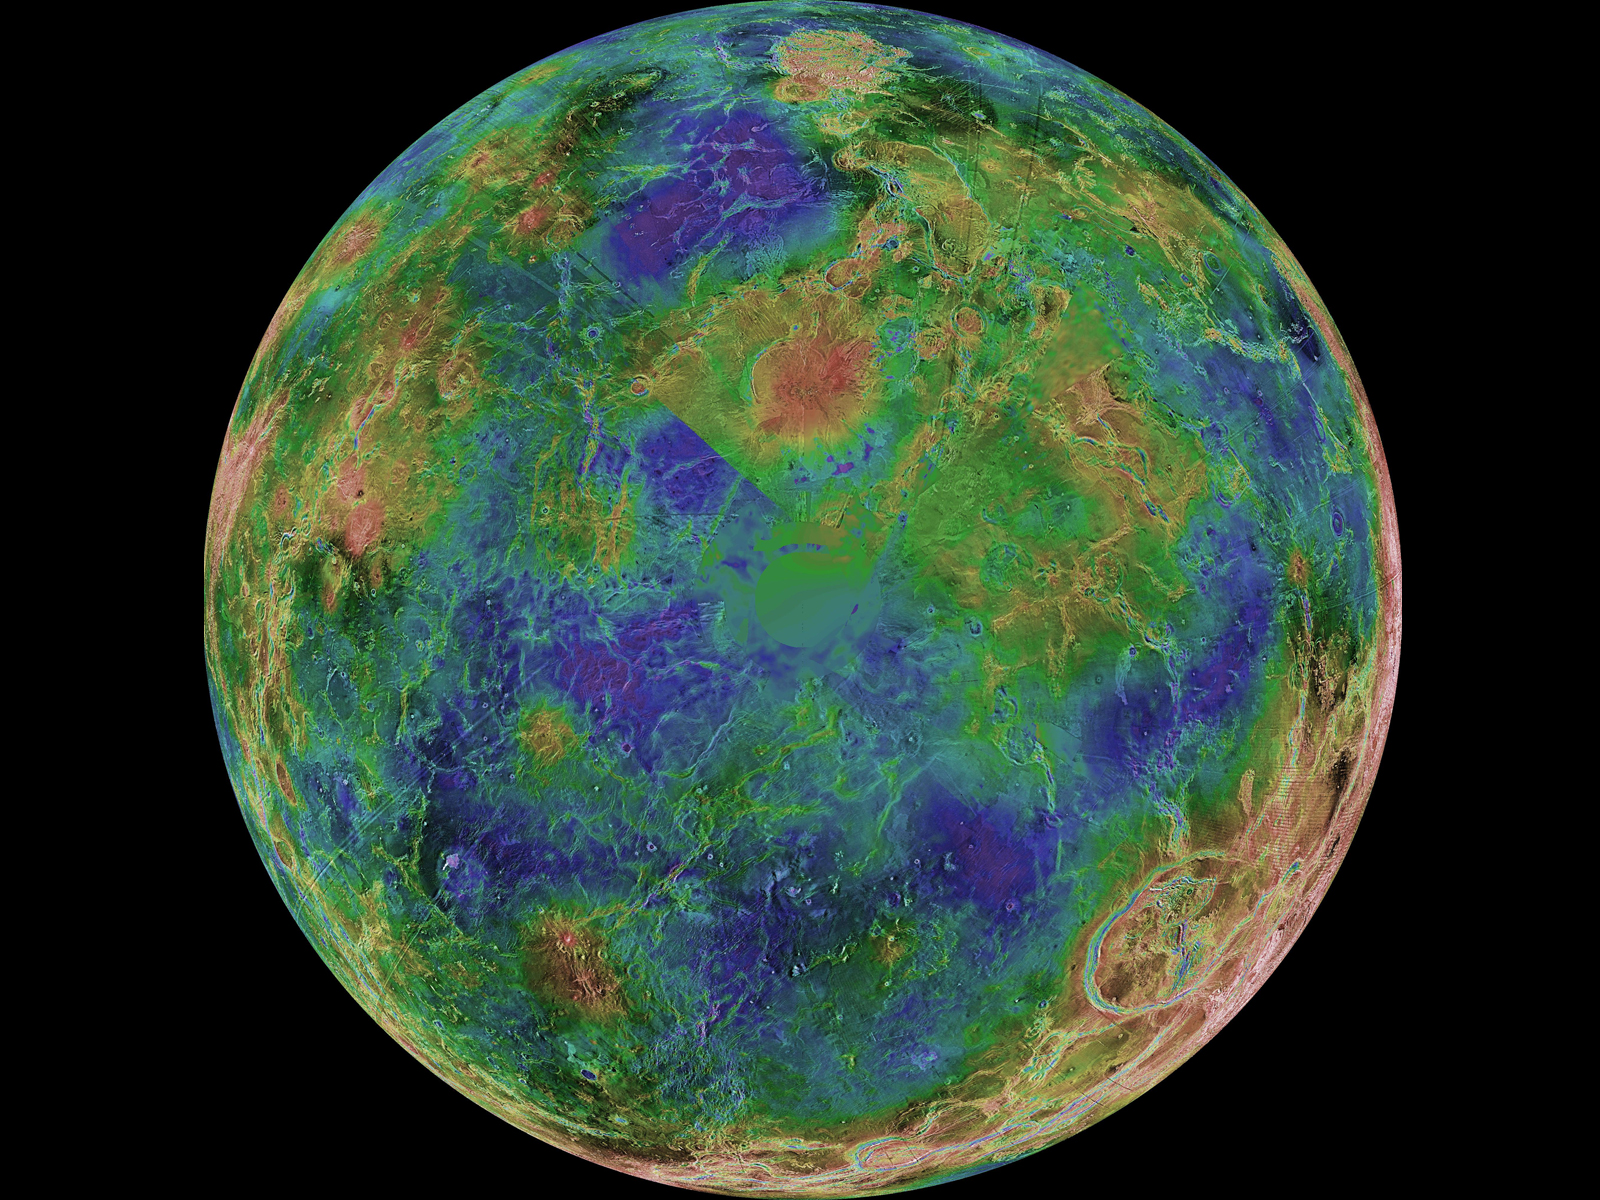 The hemispheric view of Venus, as revealed by more than a decade of radar investigations culminating in the 1990-1994 Magellan mission, is centered on the South Pole.